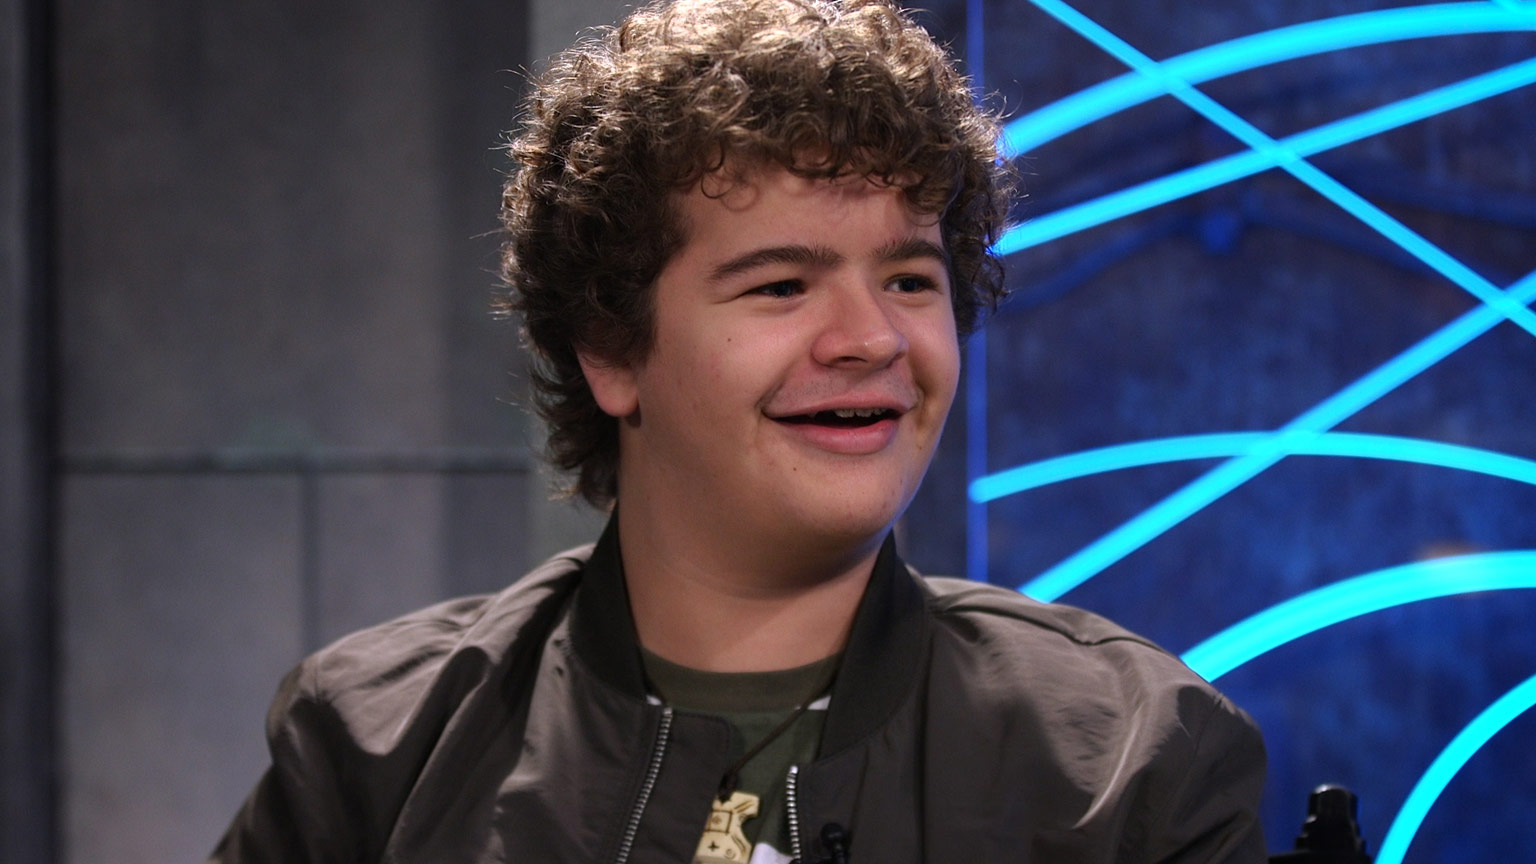 Gaten Matarazzo on The Star Wars Show